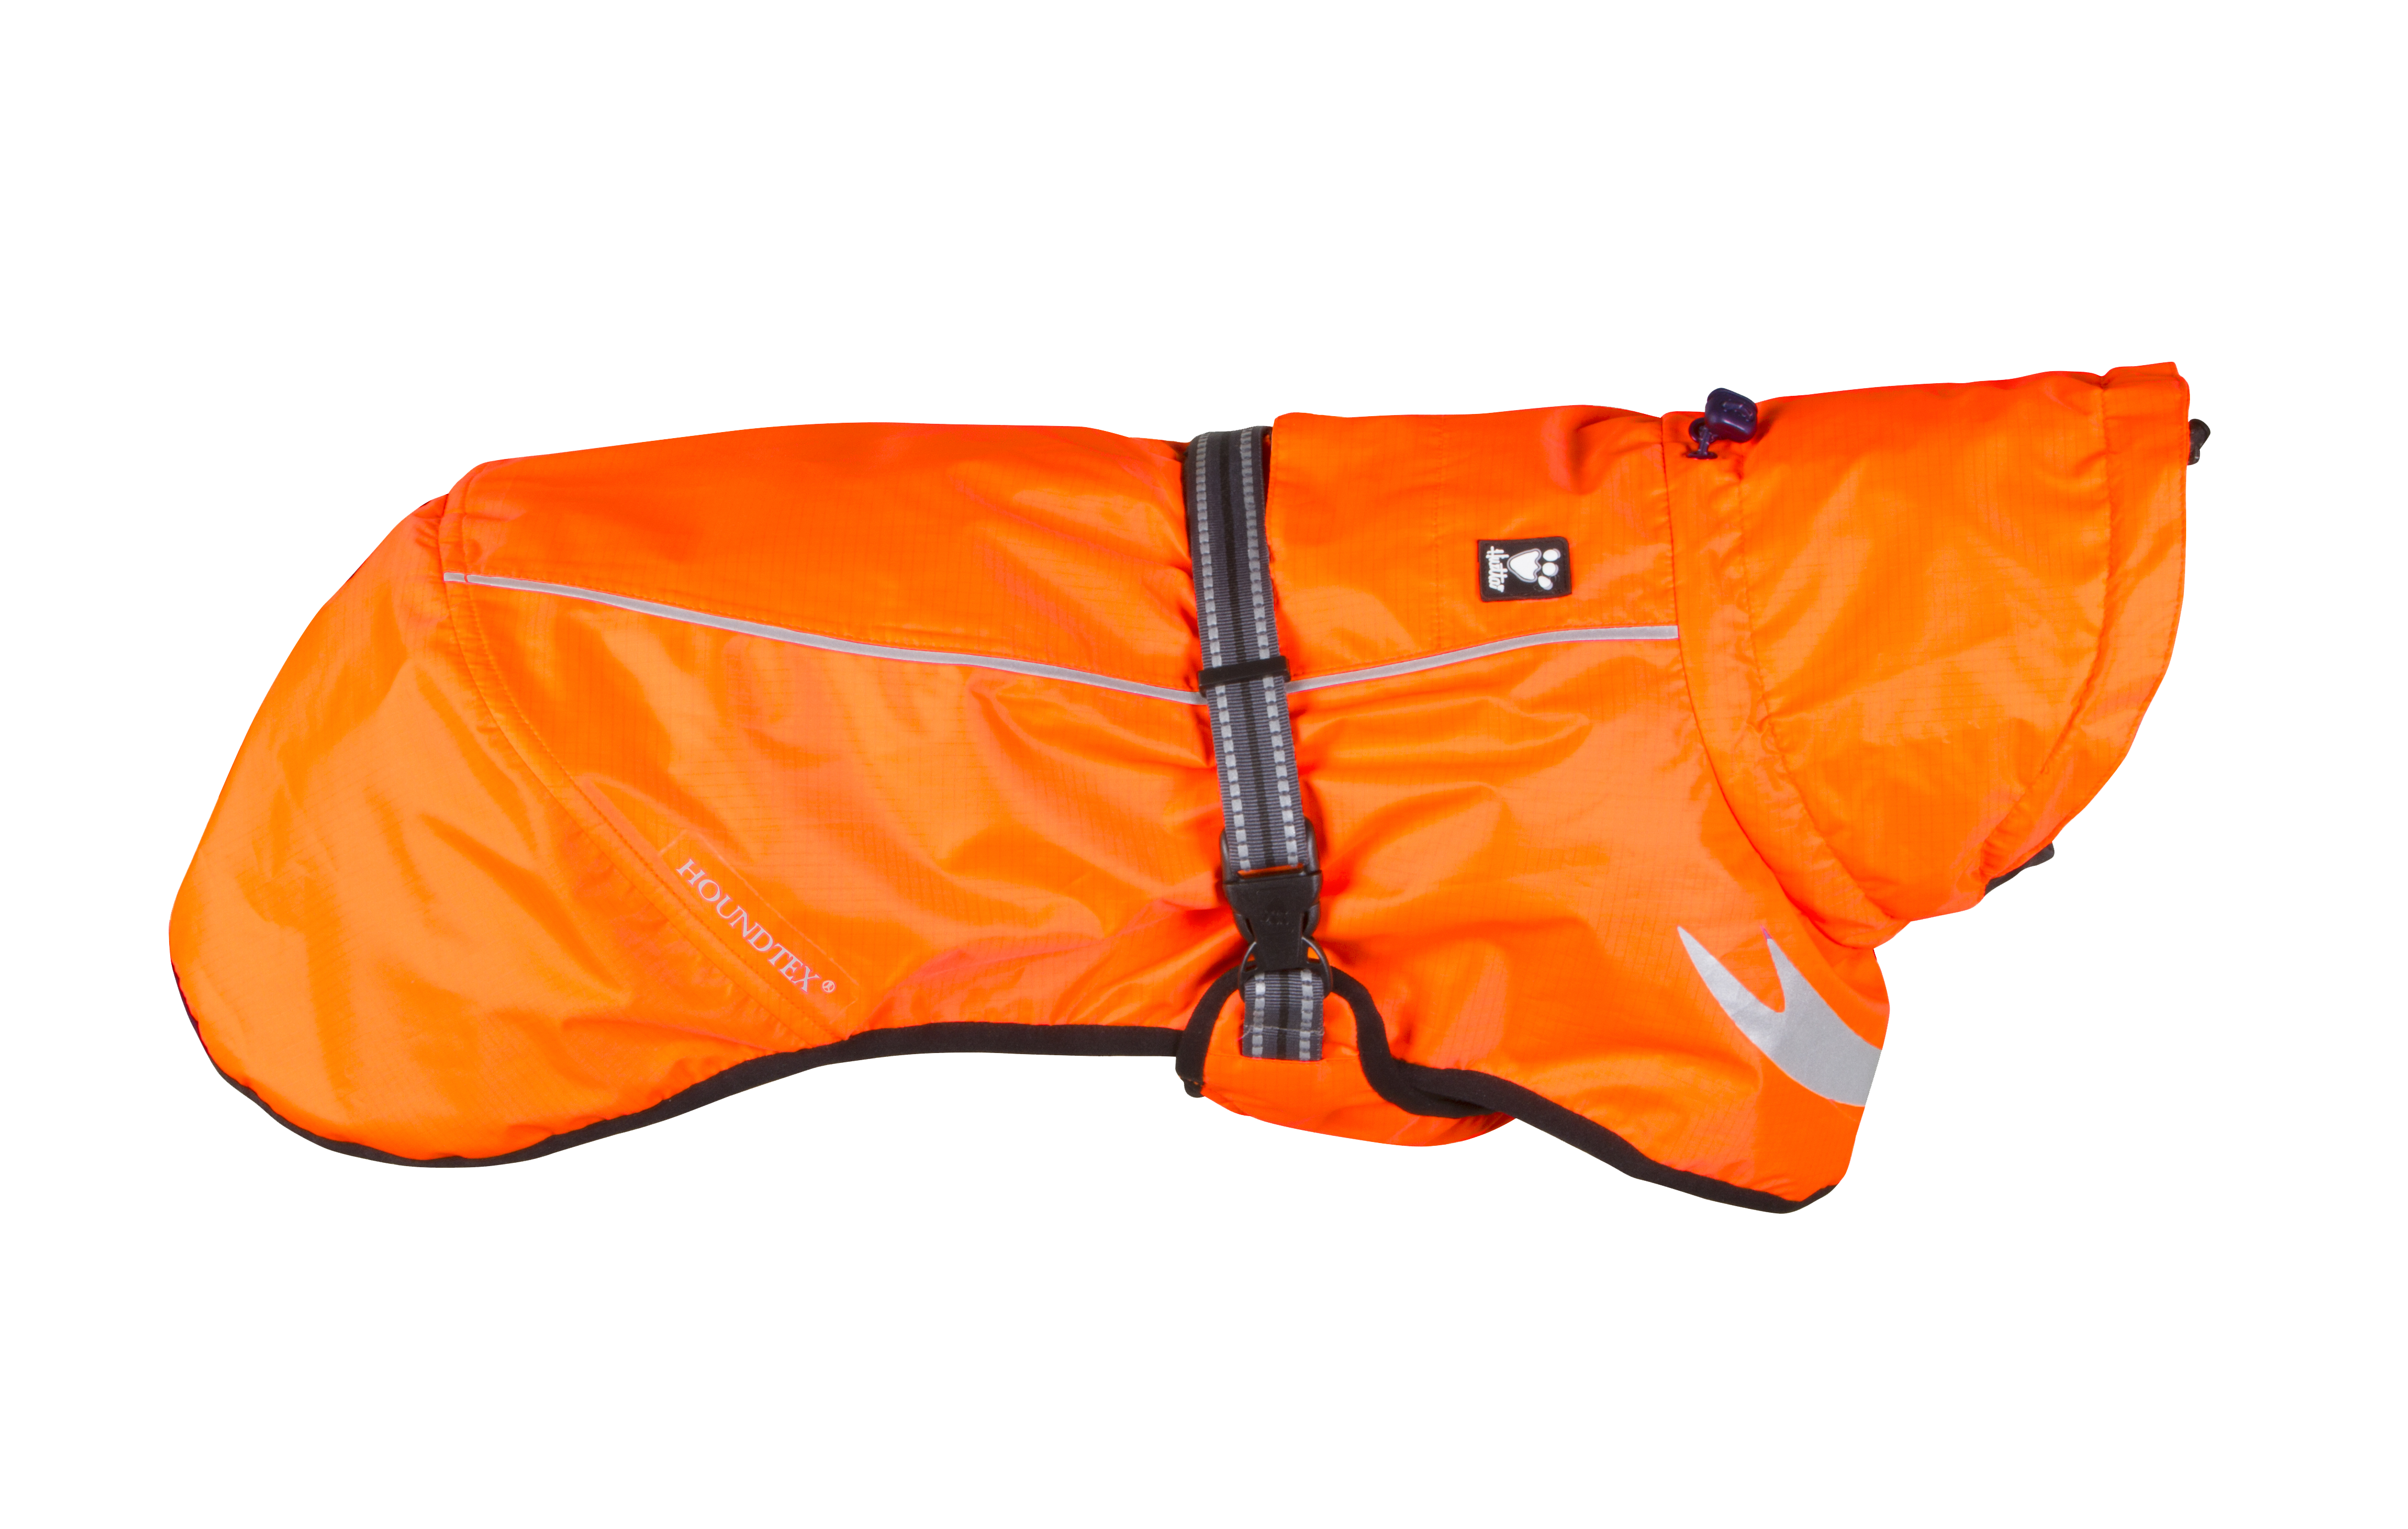 New Regenjacke Torrent farbe orange